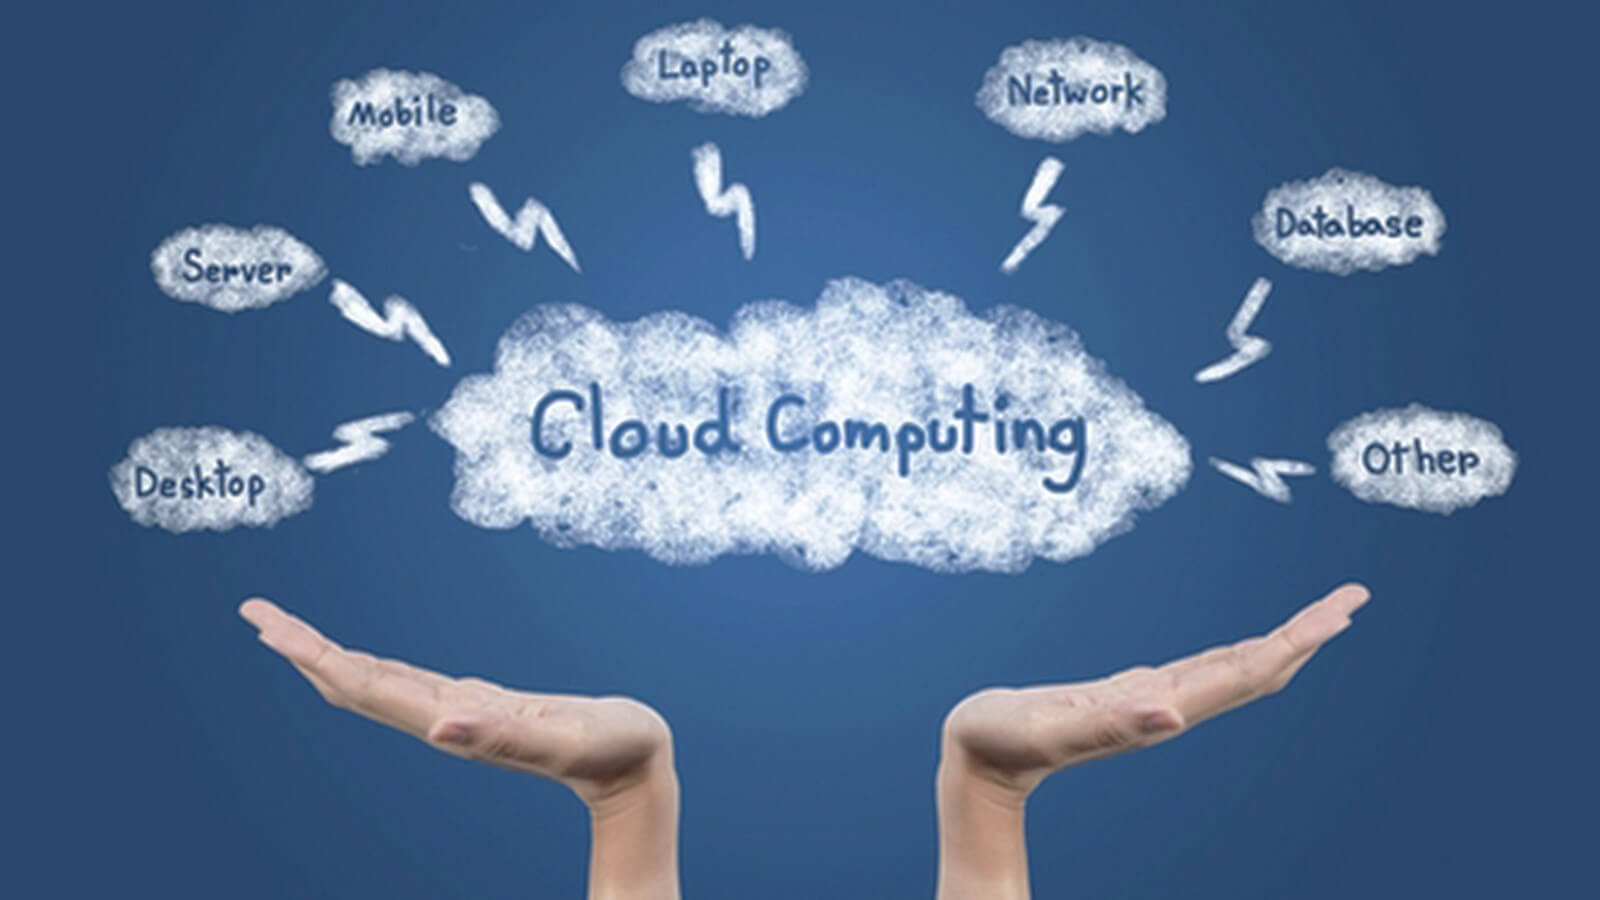 Top 7 Skills To Build A Successful Cloud Computing Career